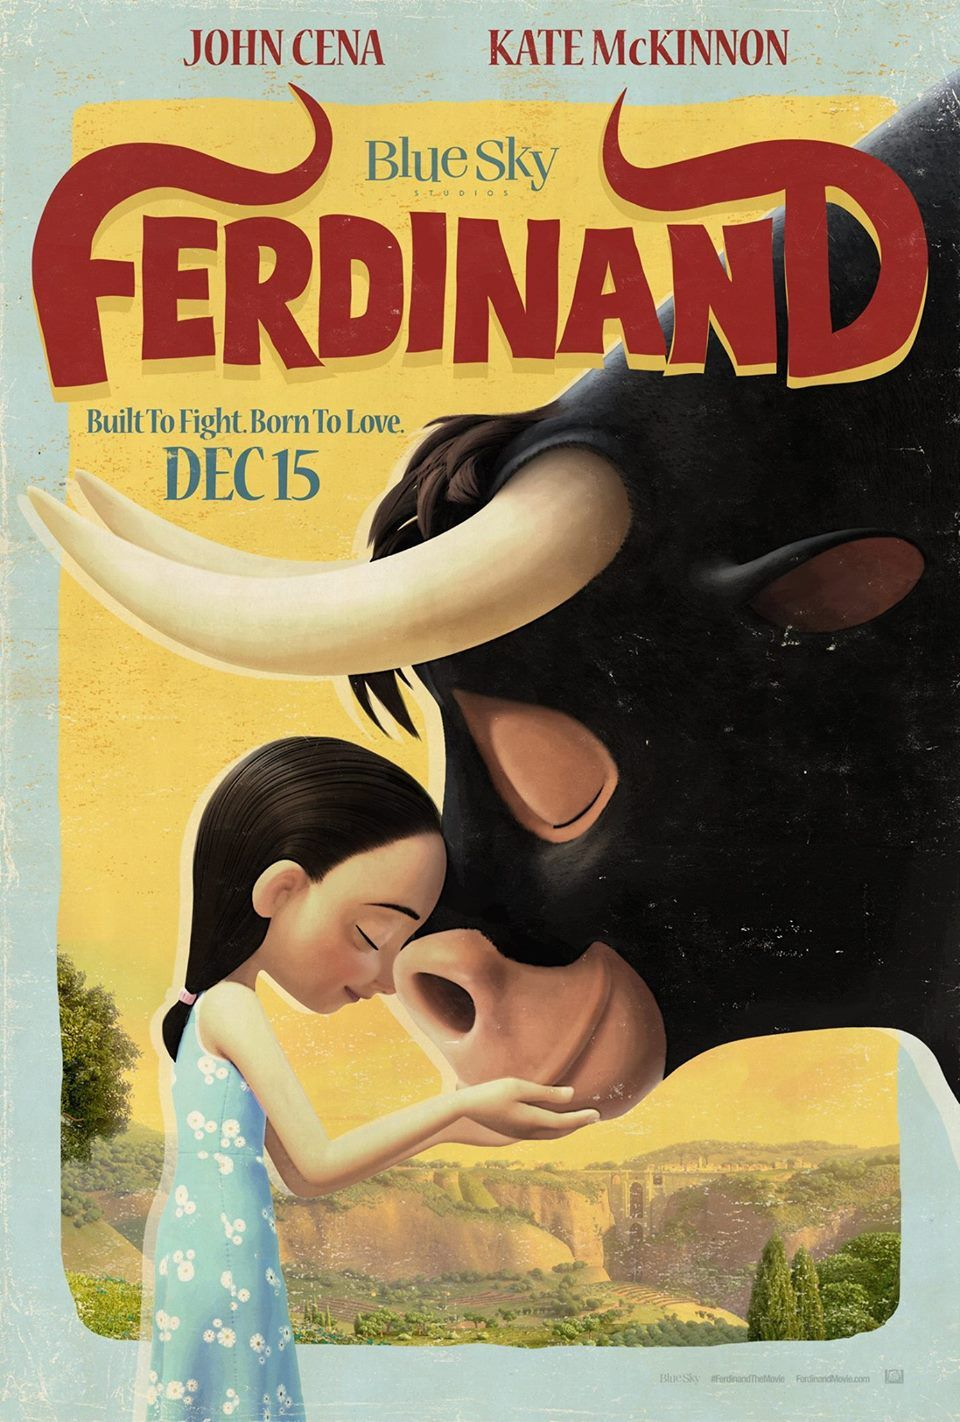 Built To Fight Born To Love The New Ferdinand Trailer Arrives